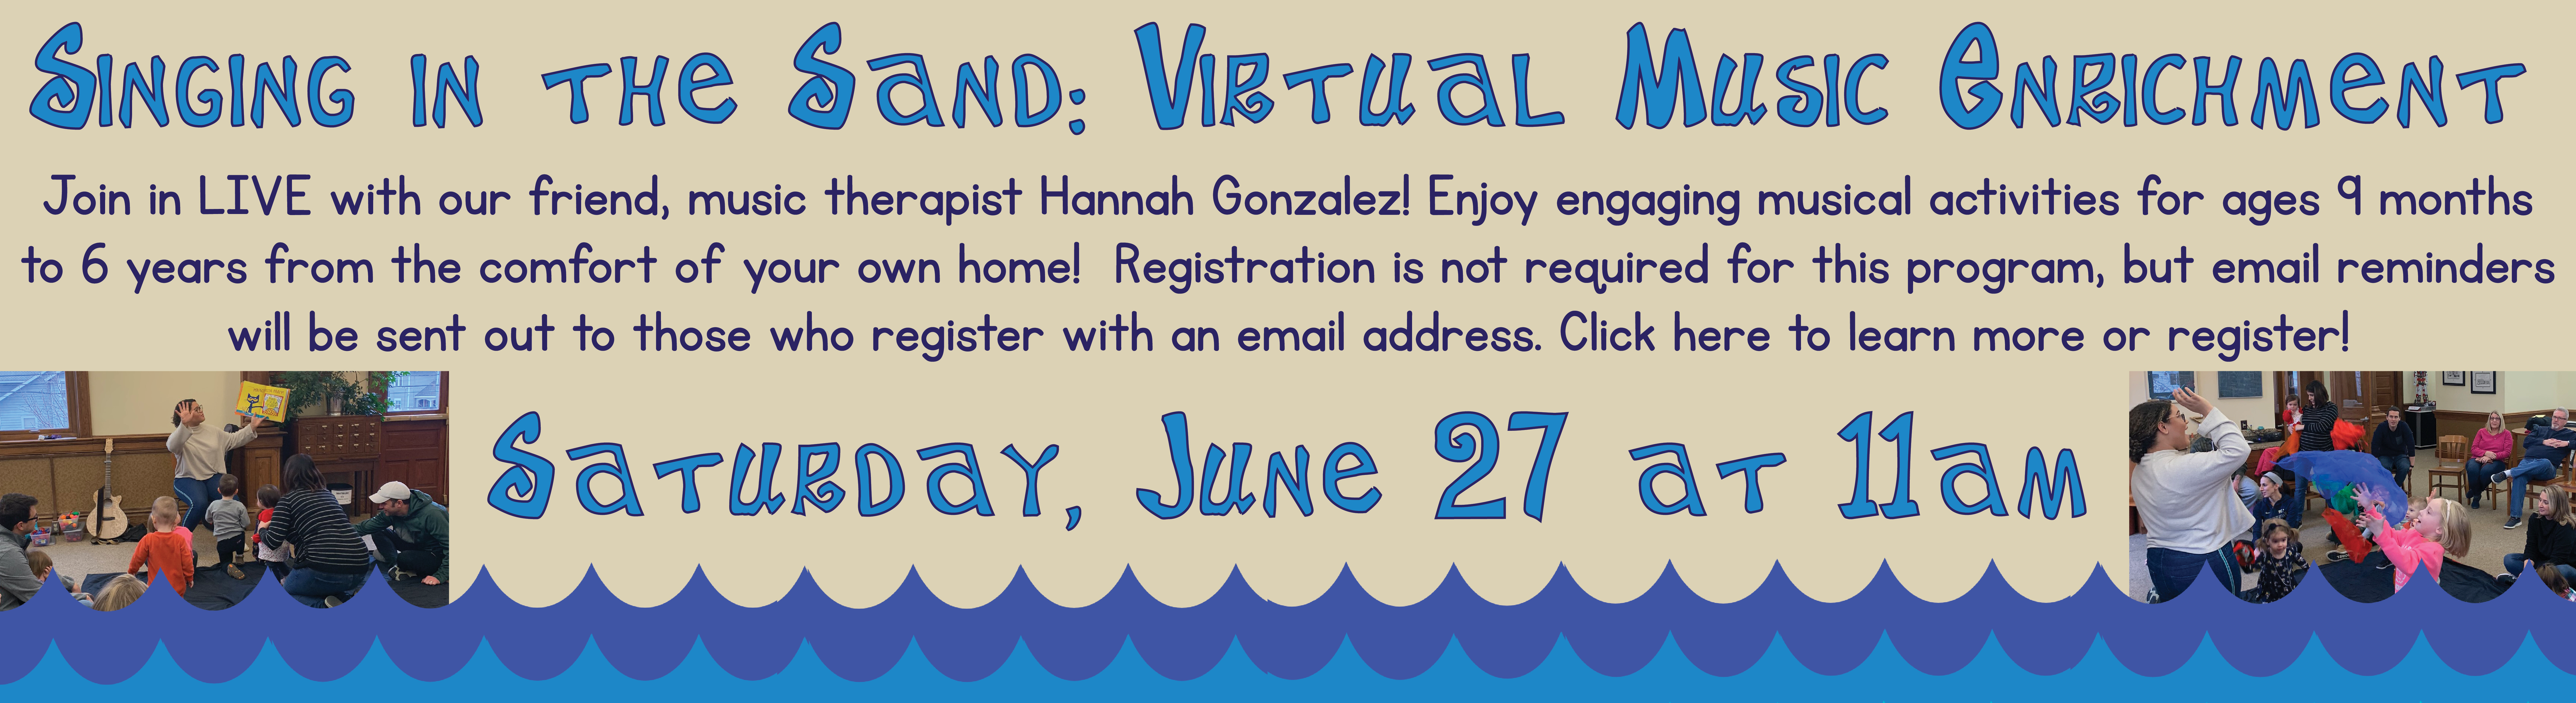 Singing in the Sand – Virtual Music Enrichment